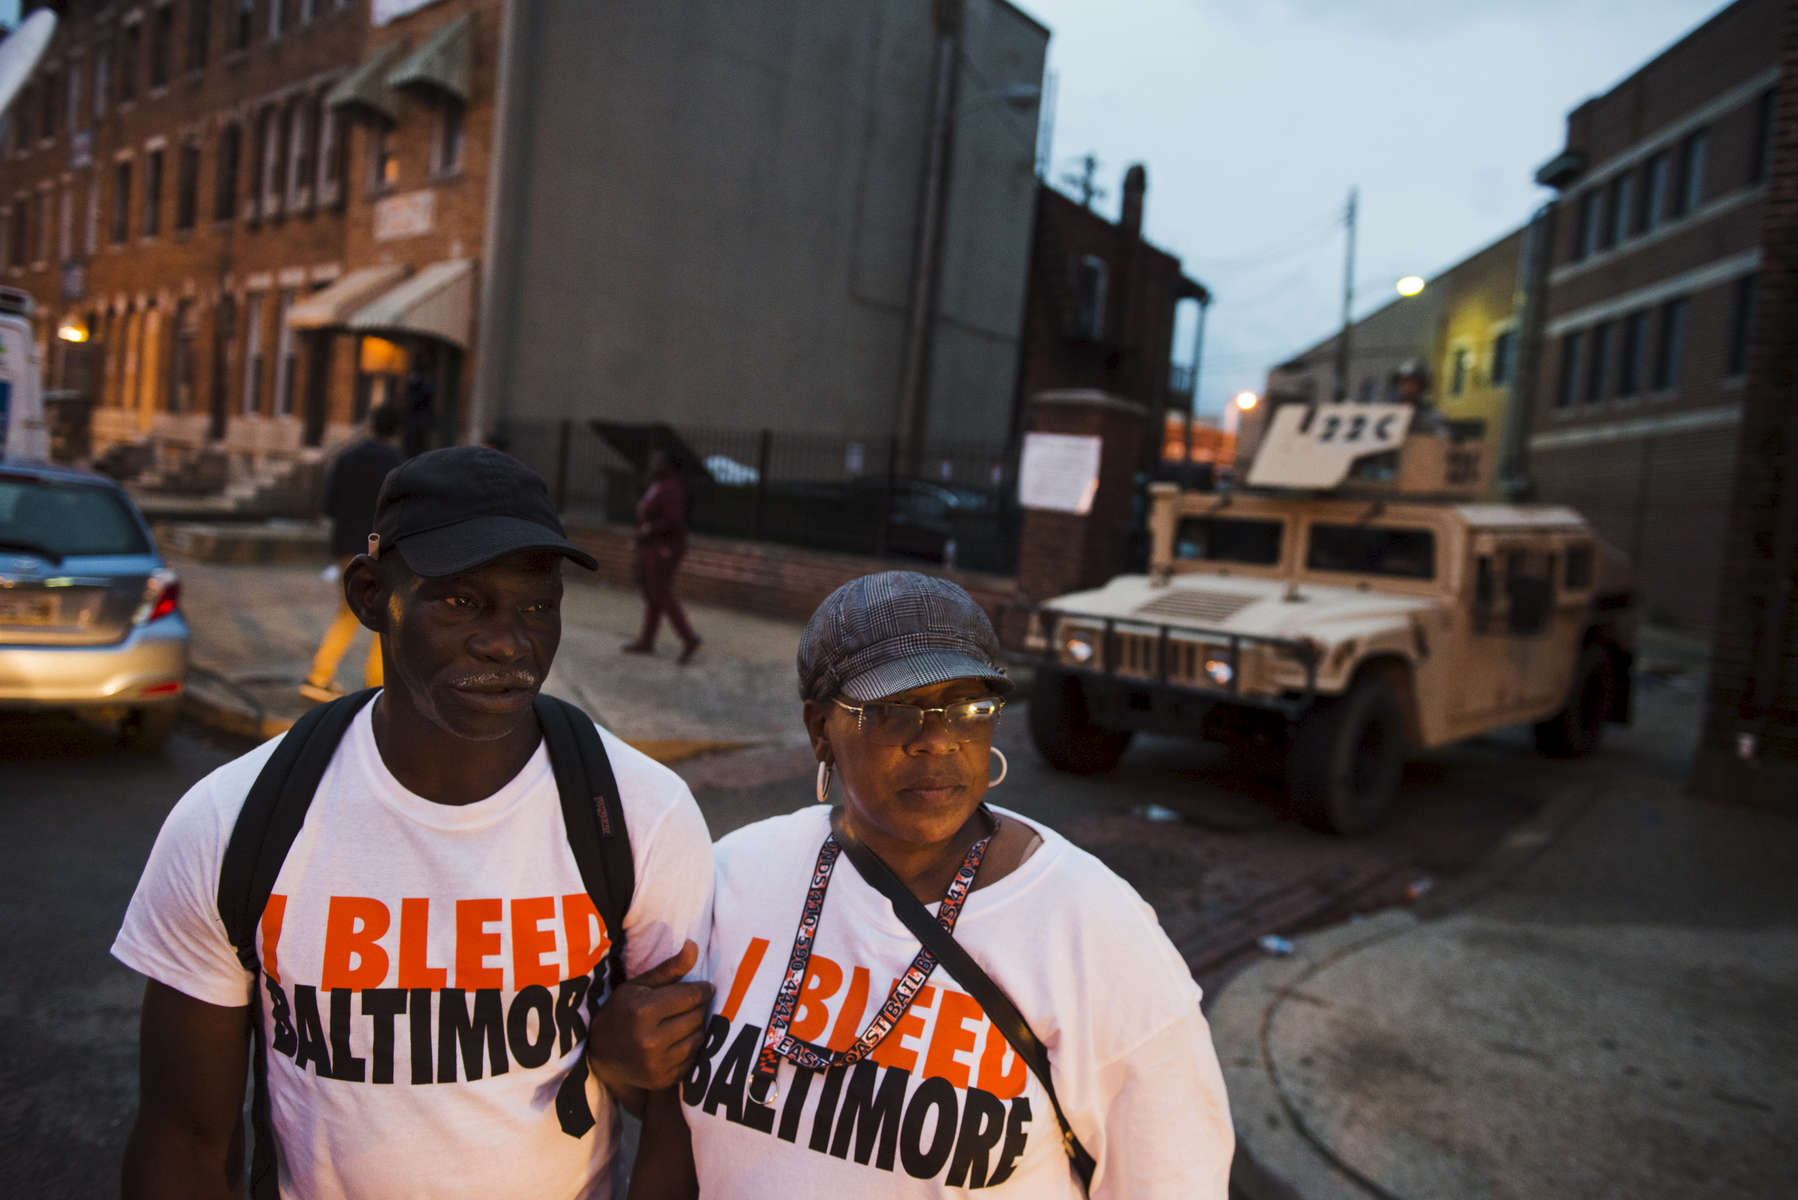 BALTIMORE, MD- APRIL 30:  Warren Morris, 53, and his cousin,Tracey Thompson, 50, wear \{quote}I Bleed Baltimore,\{quote} t-shirts made and distributed by local resident, Tony Daya, not pictured, while walking across at North Ave near Pennsylvania Avenue on Thursday, April 30, 2015 in Baltimore, MD.  Daya said he made the T-shirts for his friends and family but wanted to give them to the community as well, passing out over 20 cases of 150 shirts.  (Photo by Amanda Voisard/For the Washington Post)